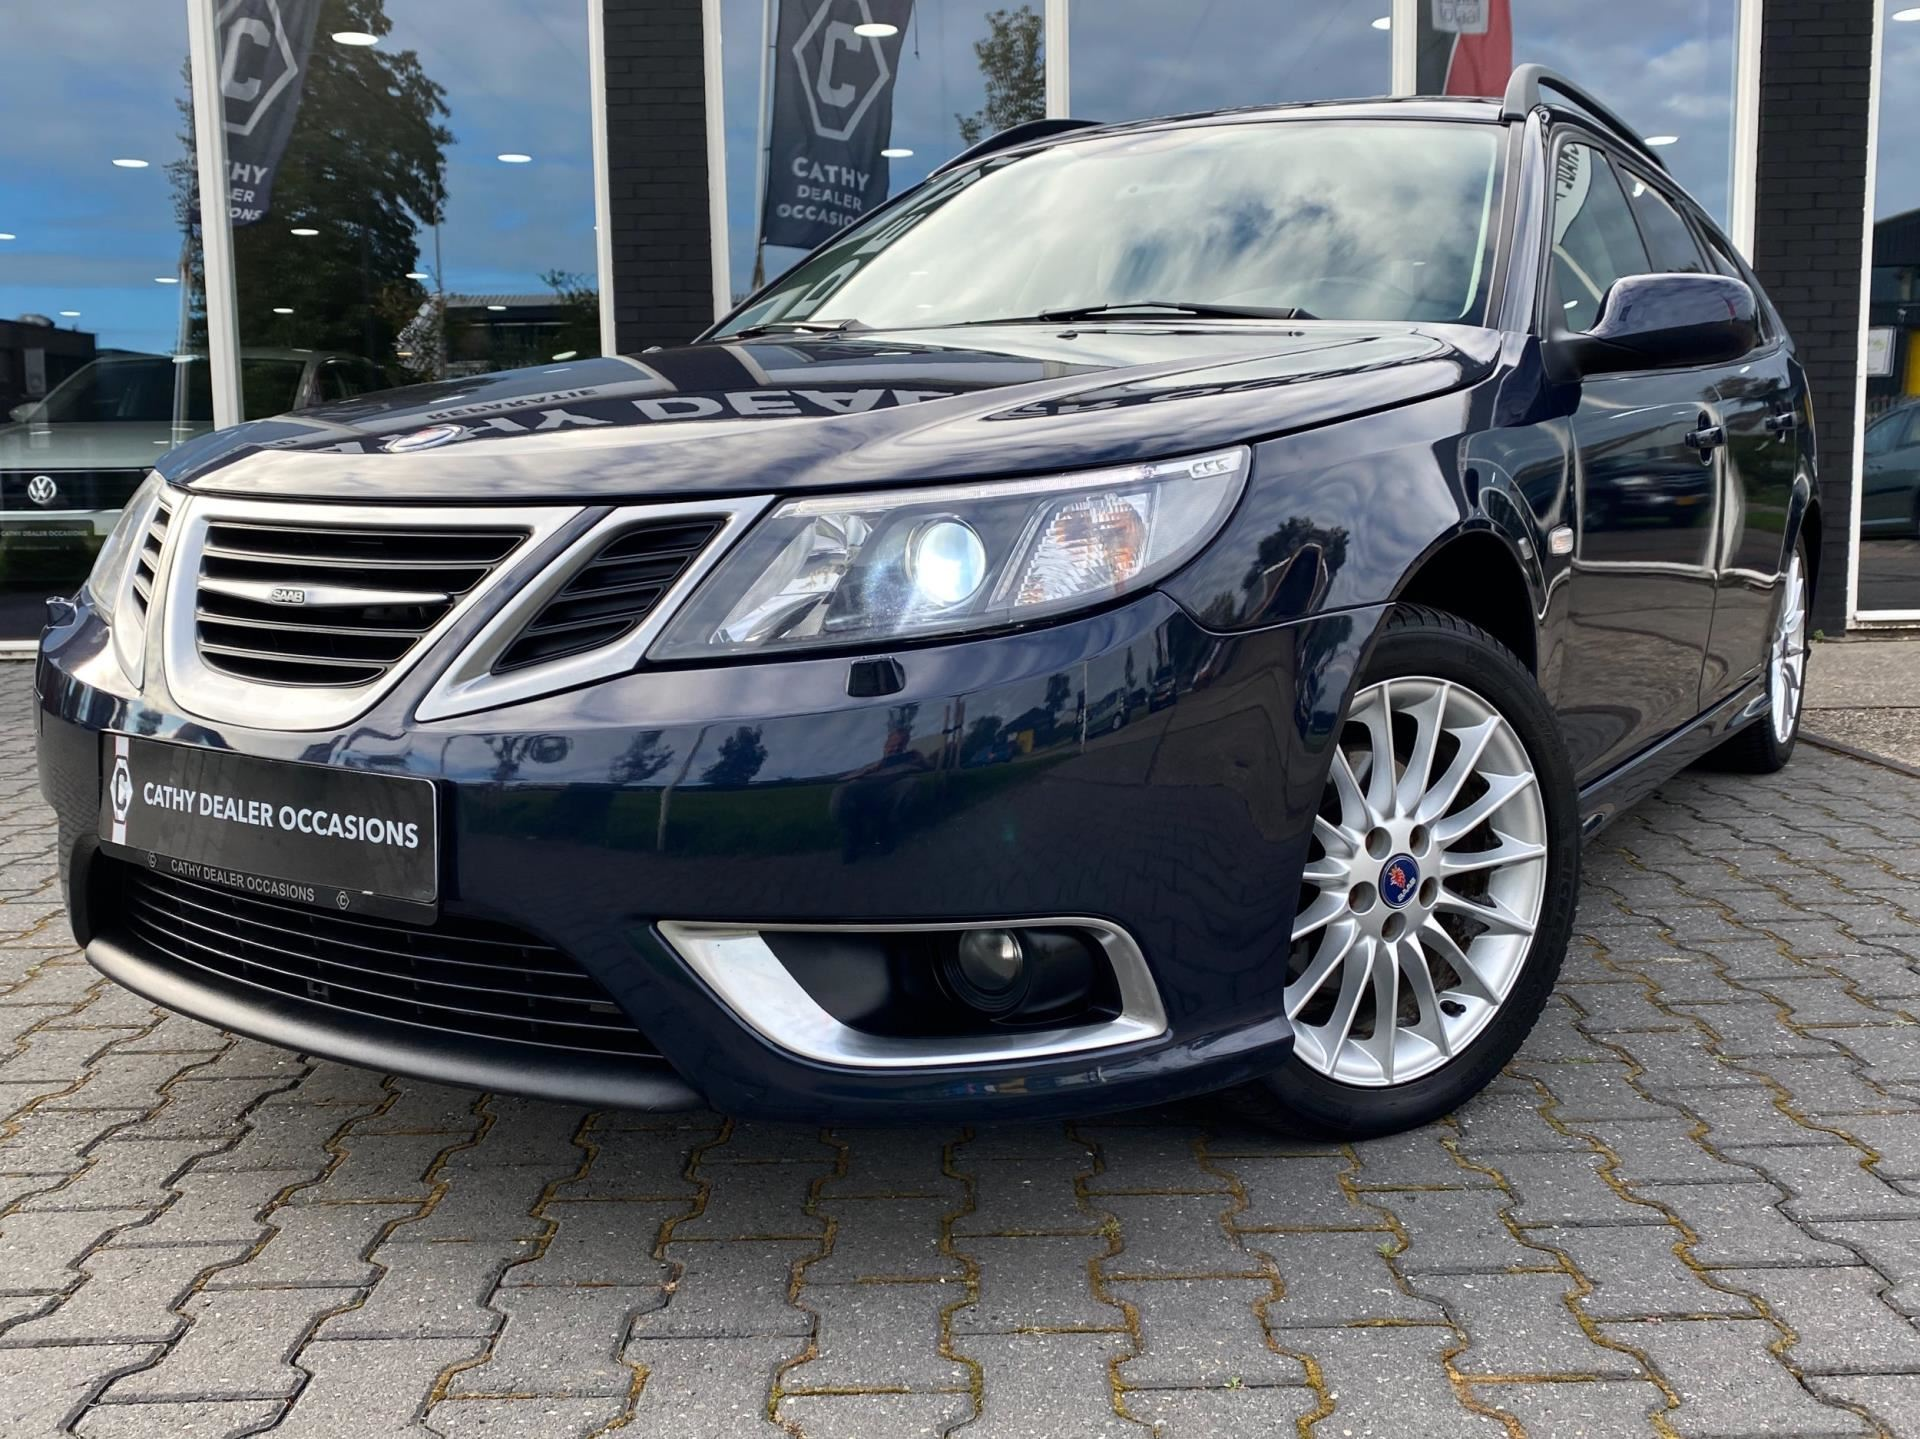 Saab SAAB 9-3 occasion - Cathy Dealer Occasions